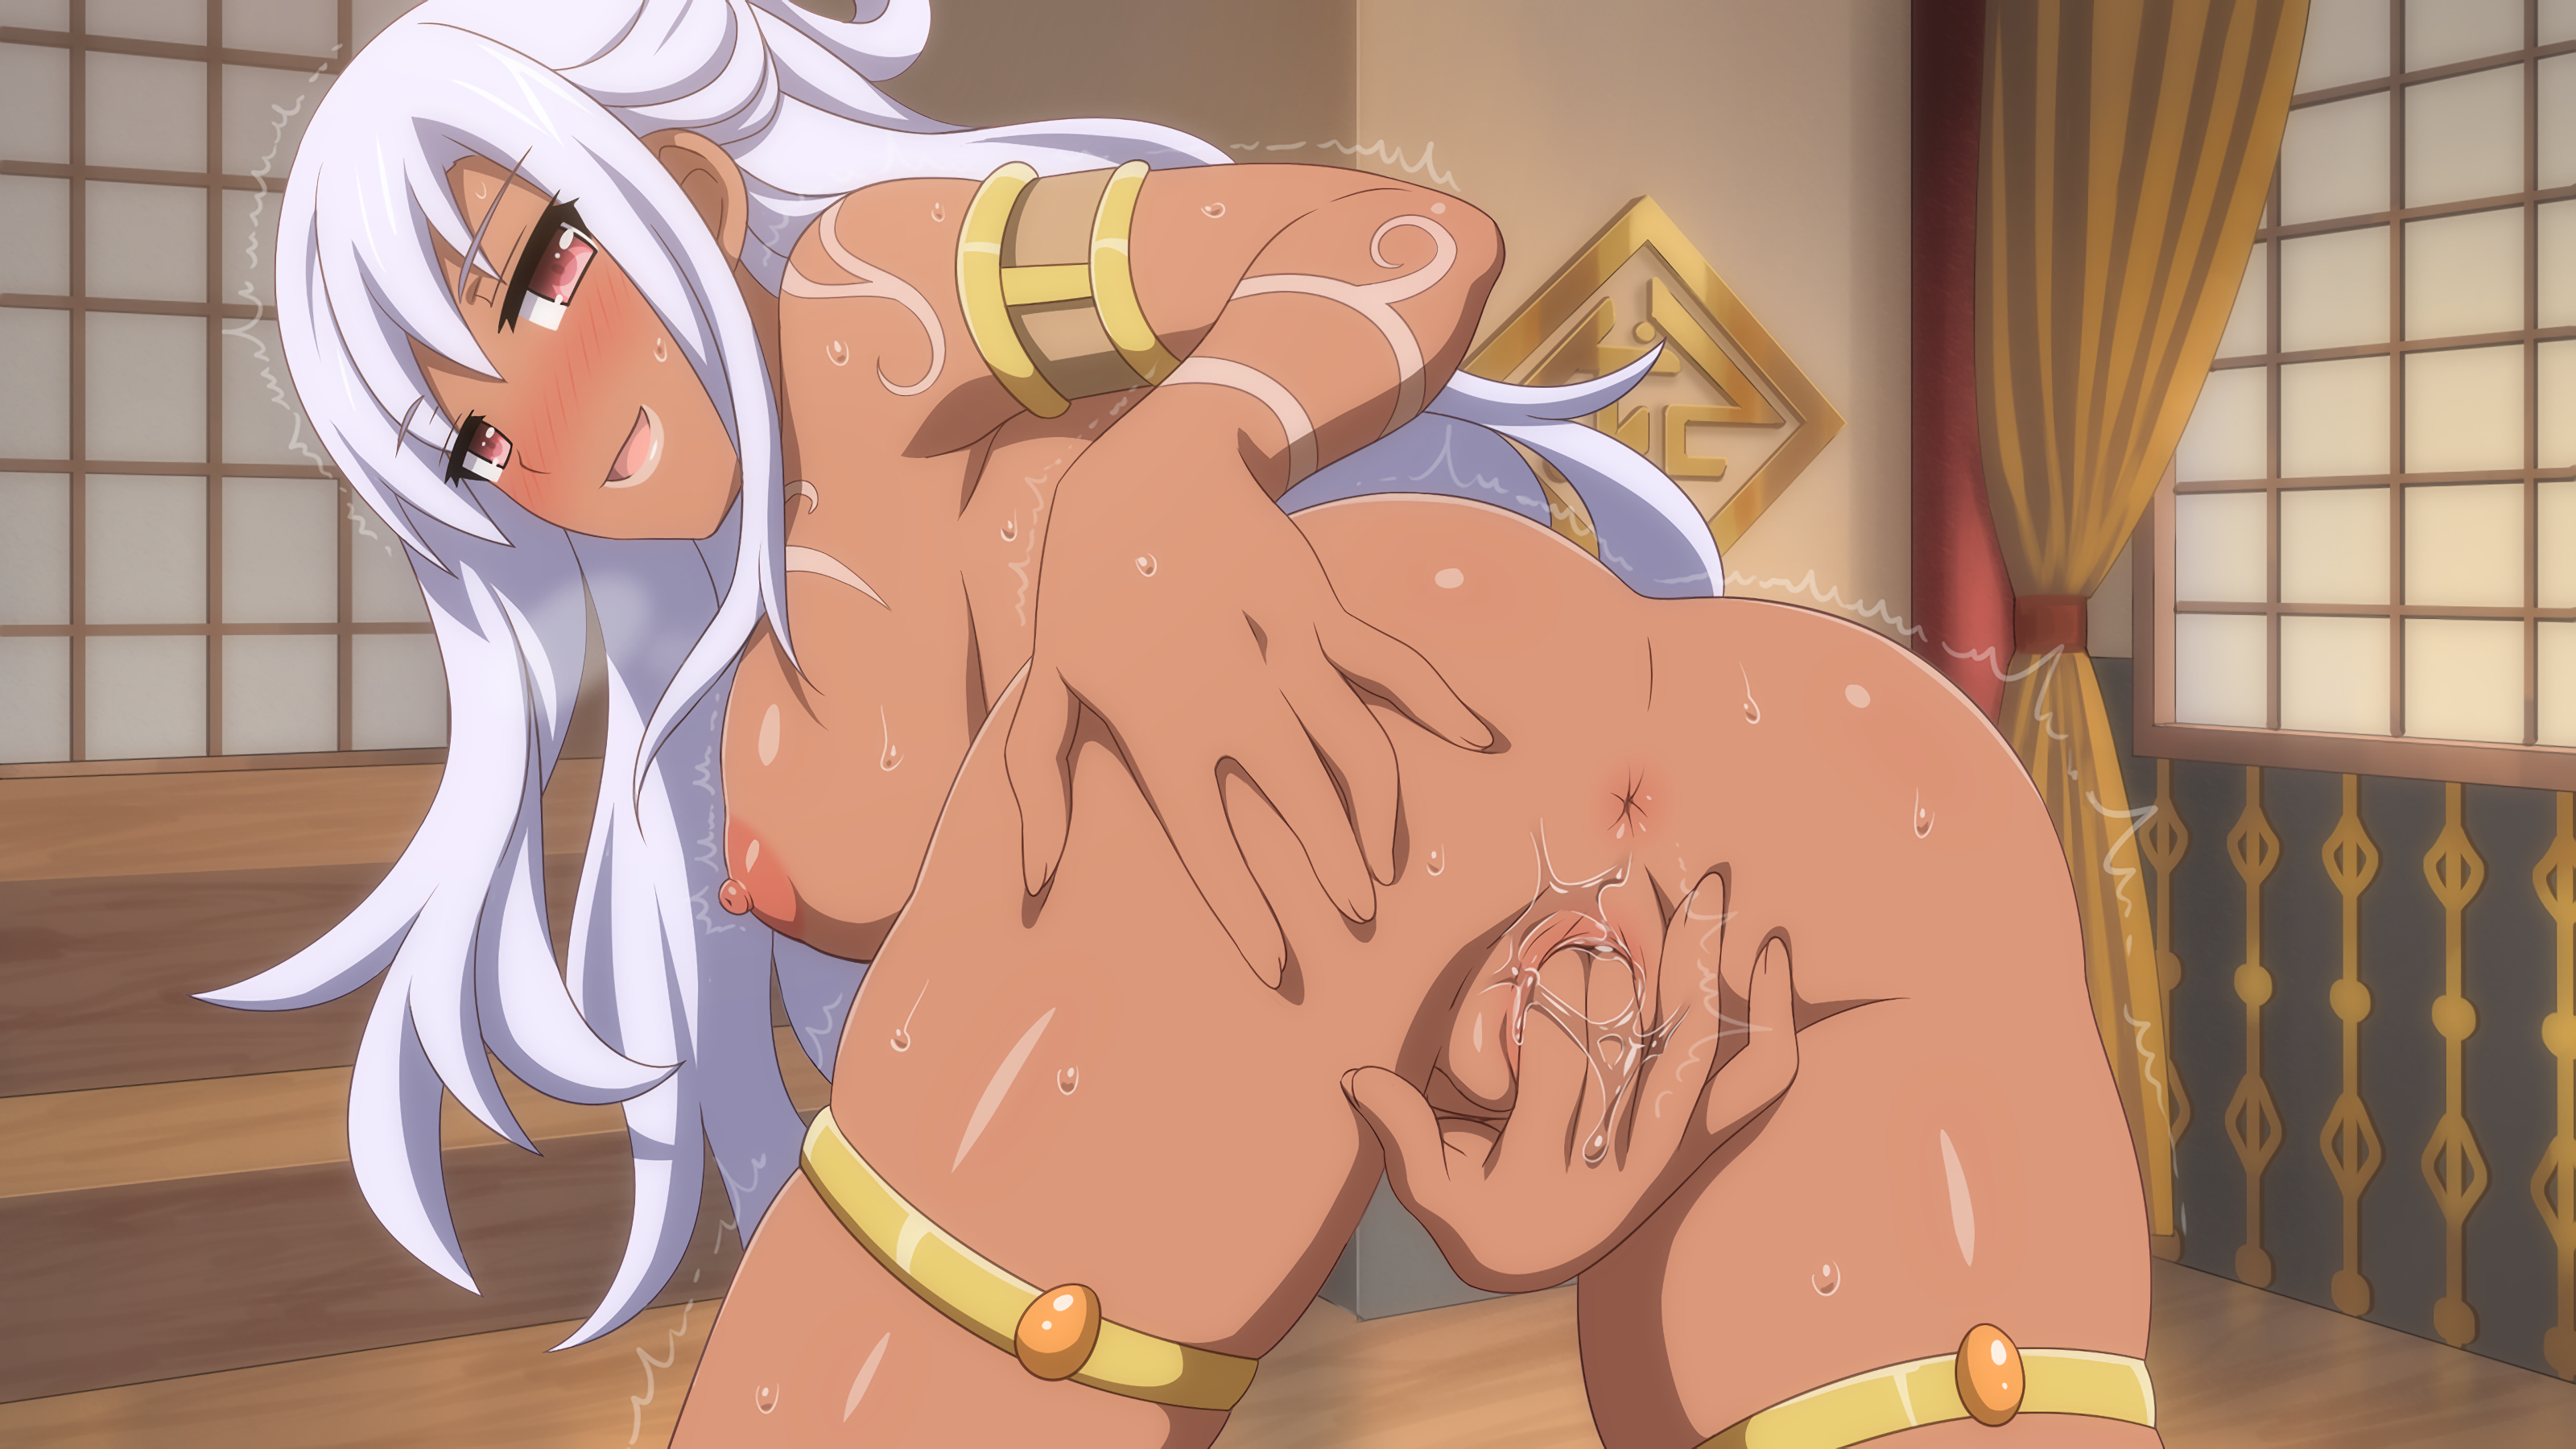 Anal Anime Dungeon Porn sakura dungeon sex scene sex hot pictures free. comments: 1